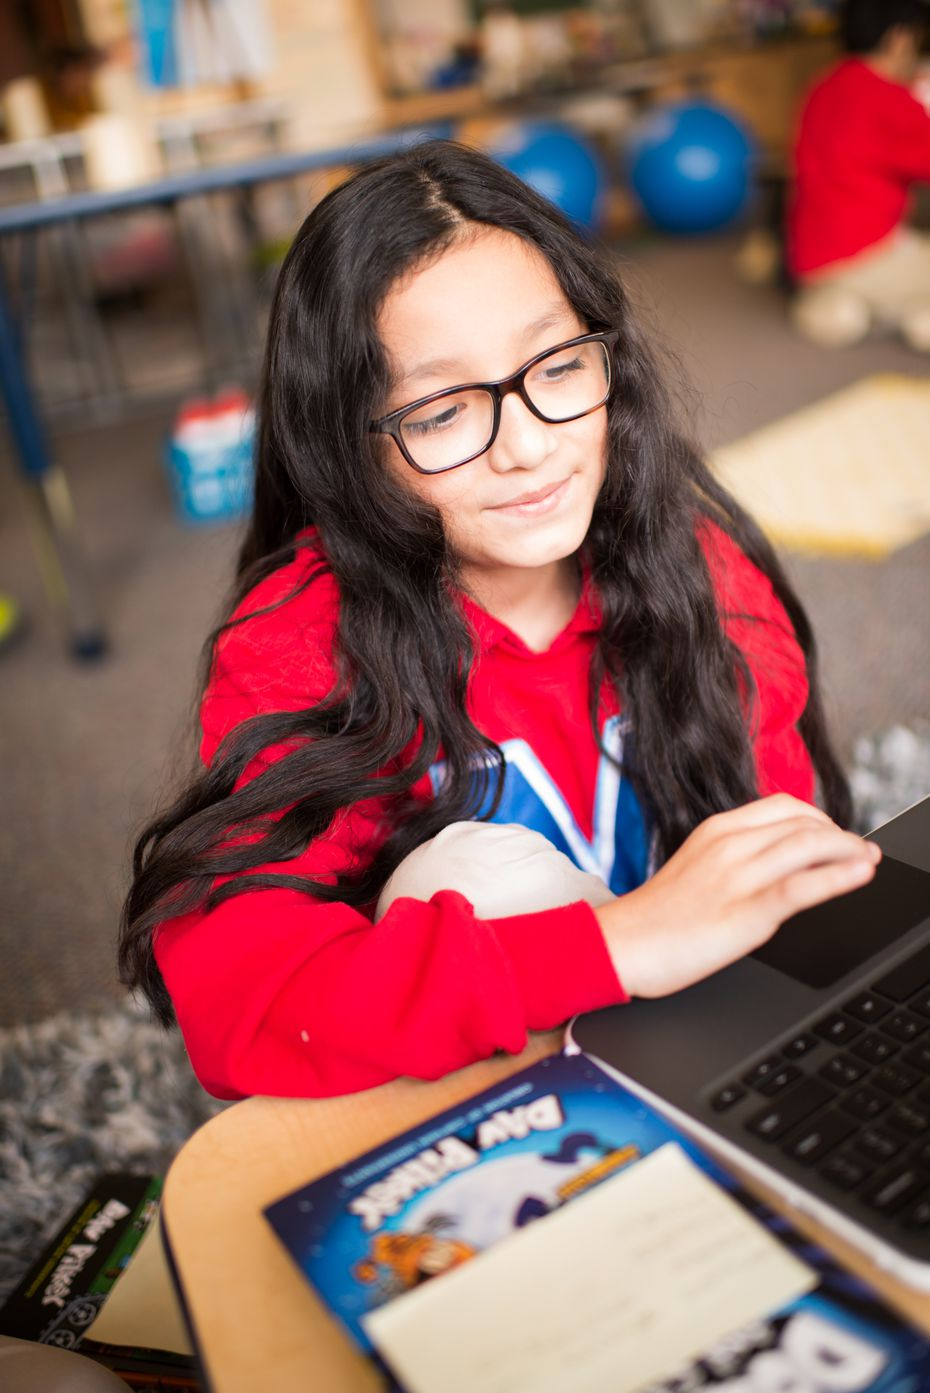 A student at the Momentous School completes an assignment online. AT&T provided hot spots to the Momentous Institute earlier this year to help ensure students can access the internet from anywhere.